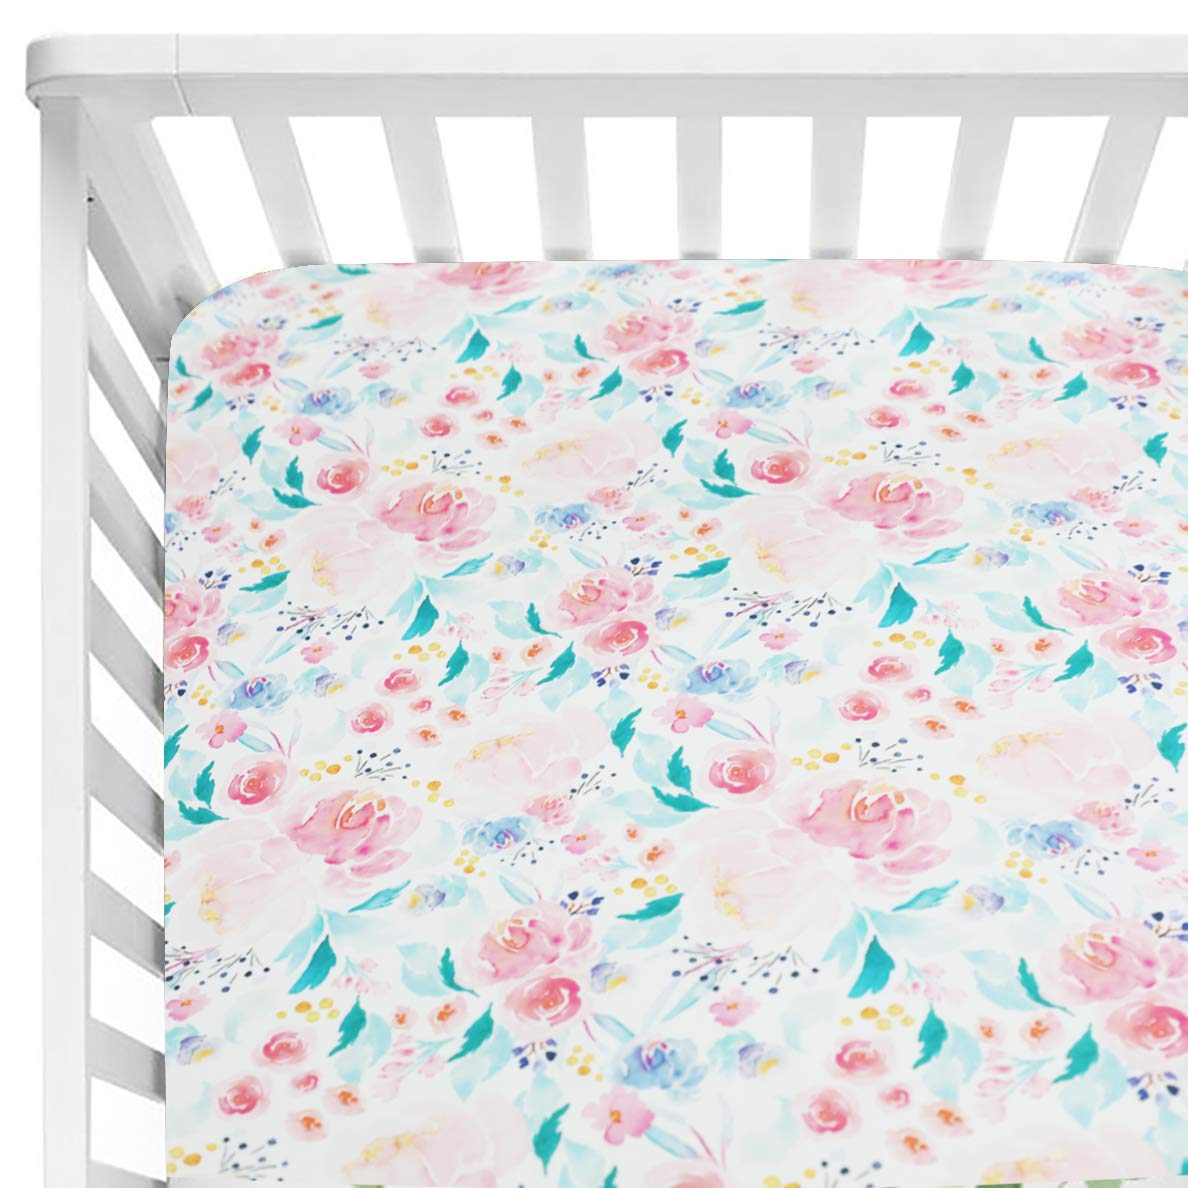 Sahaler Floral Crib Sheet for Girl Boy Baby Fitted Crib Sheets for Standard Crib and Toddle Mattresses-Teal Green & Pink Floral